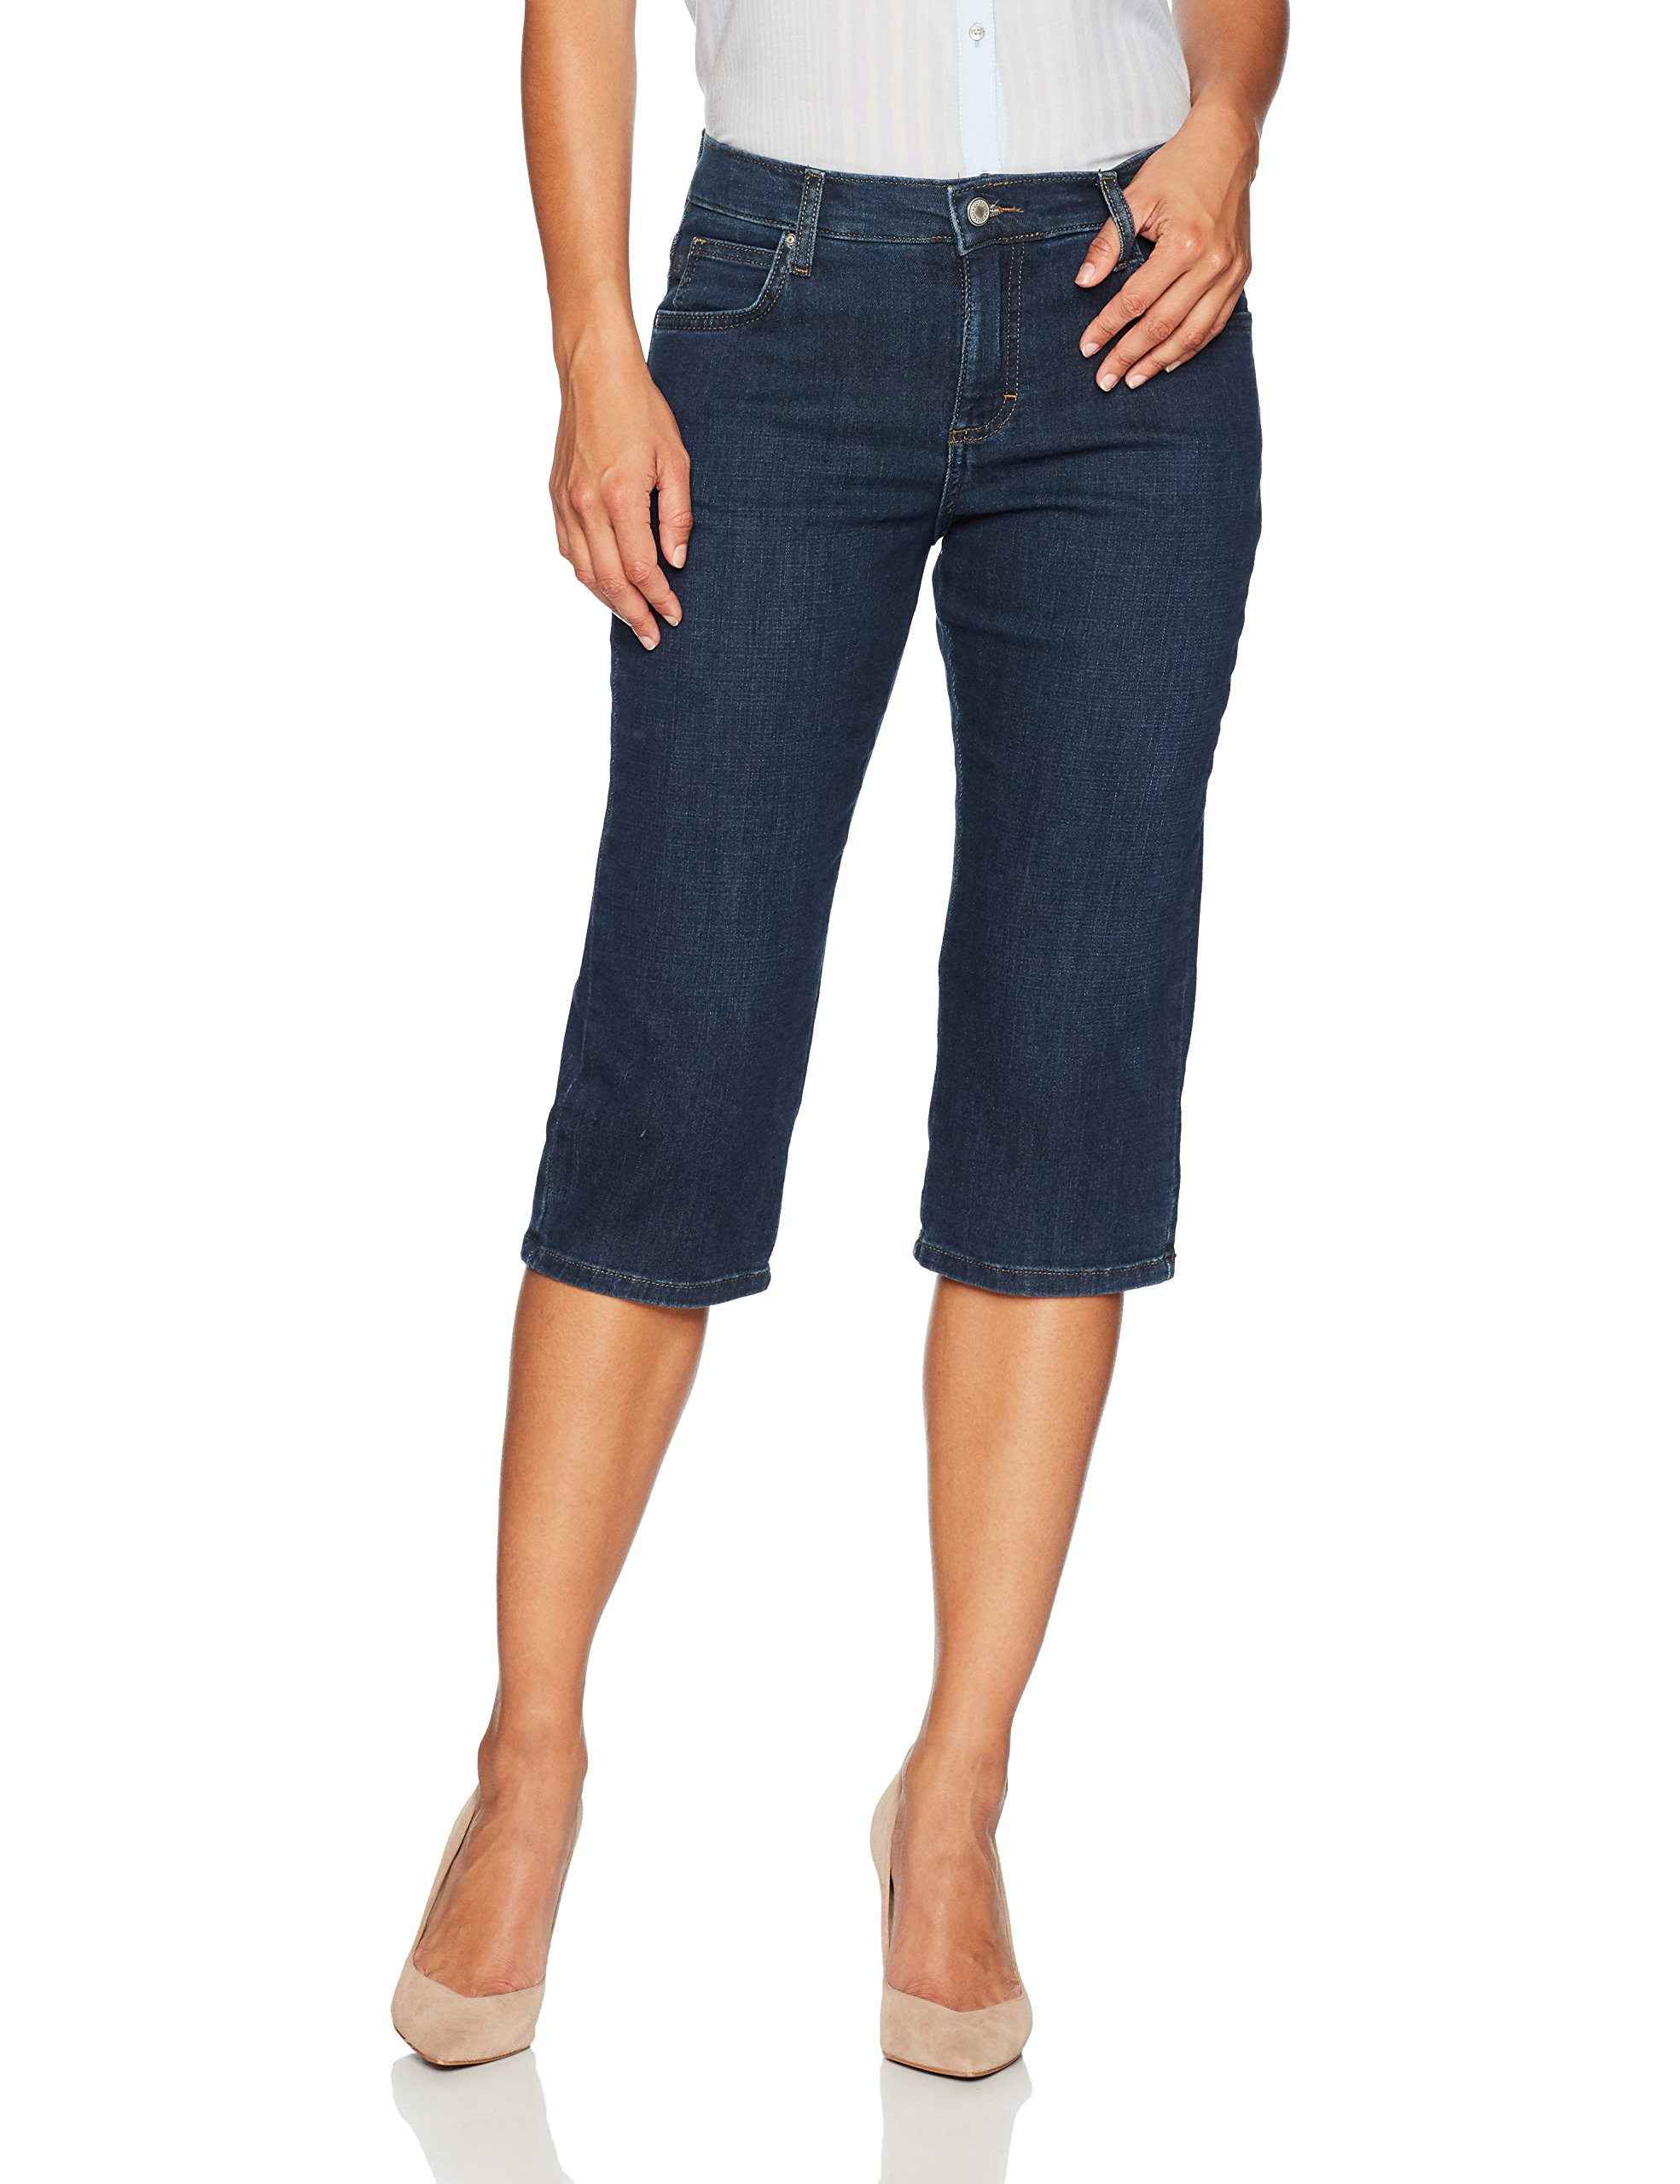 LEE Women's Relaxed Fit Capri Pant, Mysterious, 8 Petite